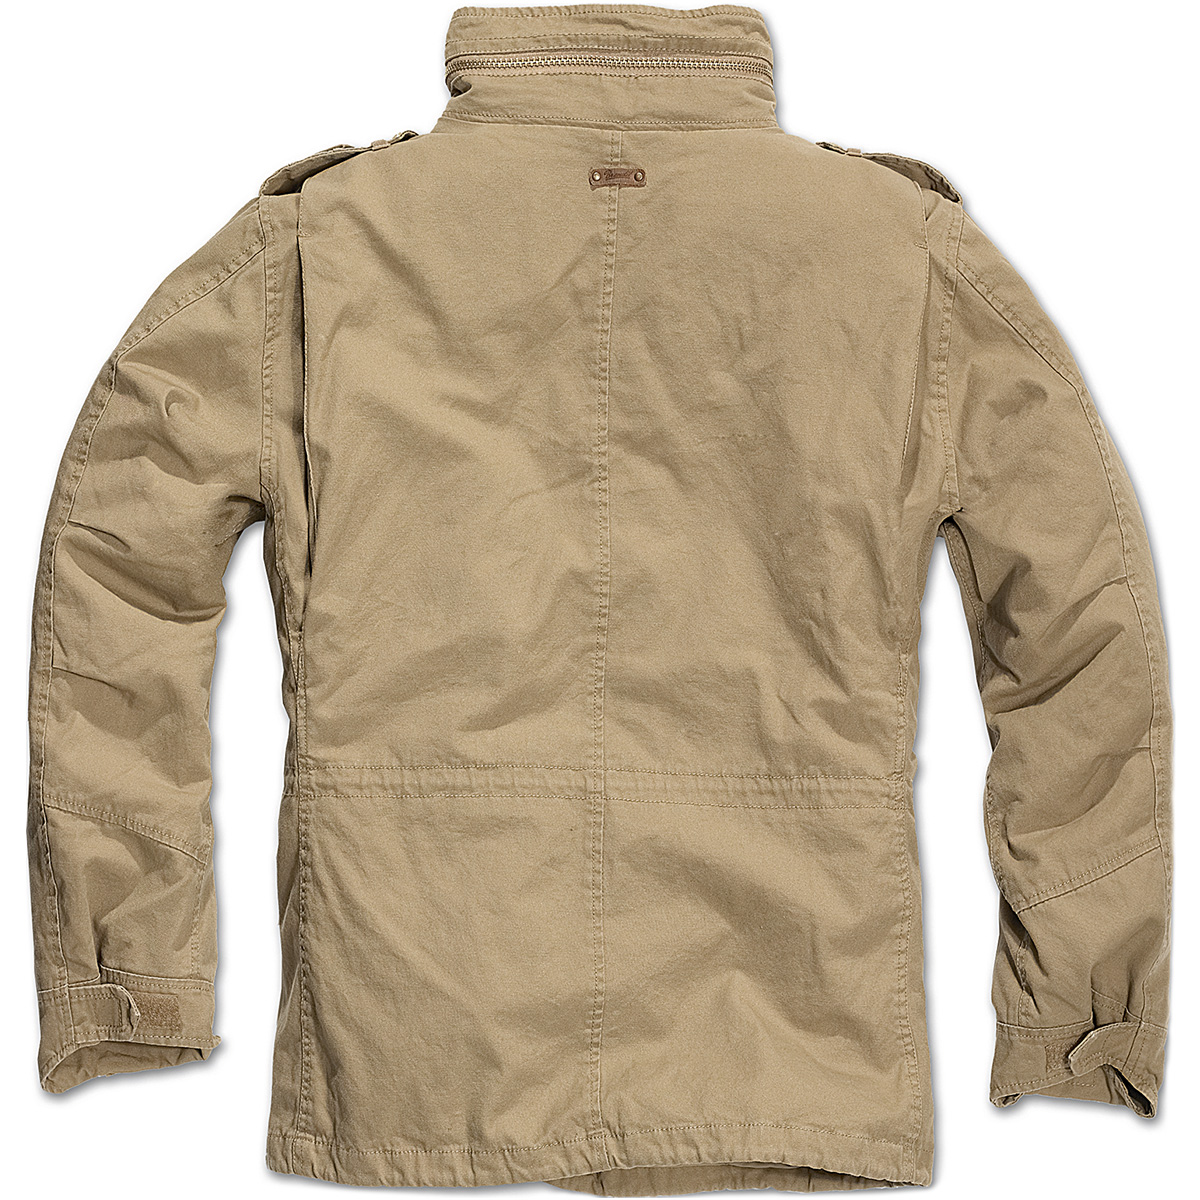 32 Best M60 jacket images | Jackets, Field jacket, M65 jacket